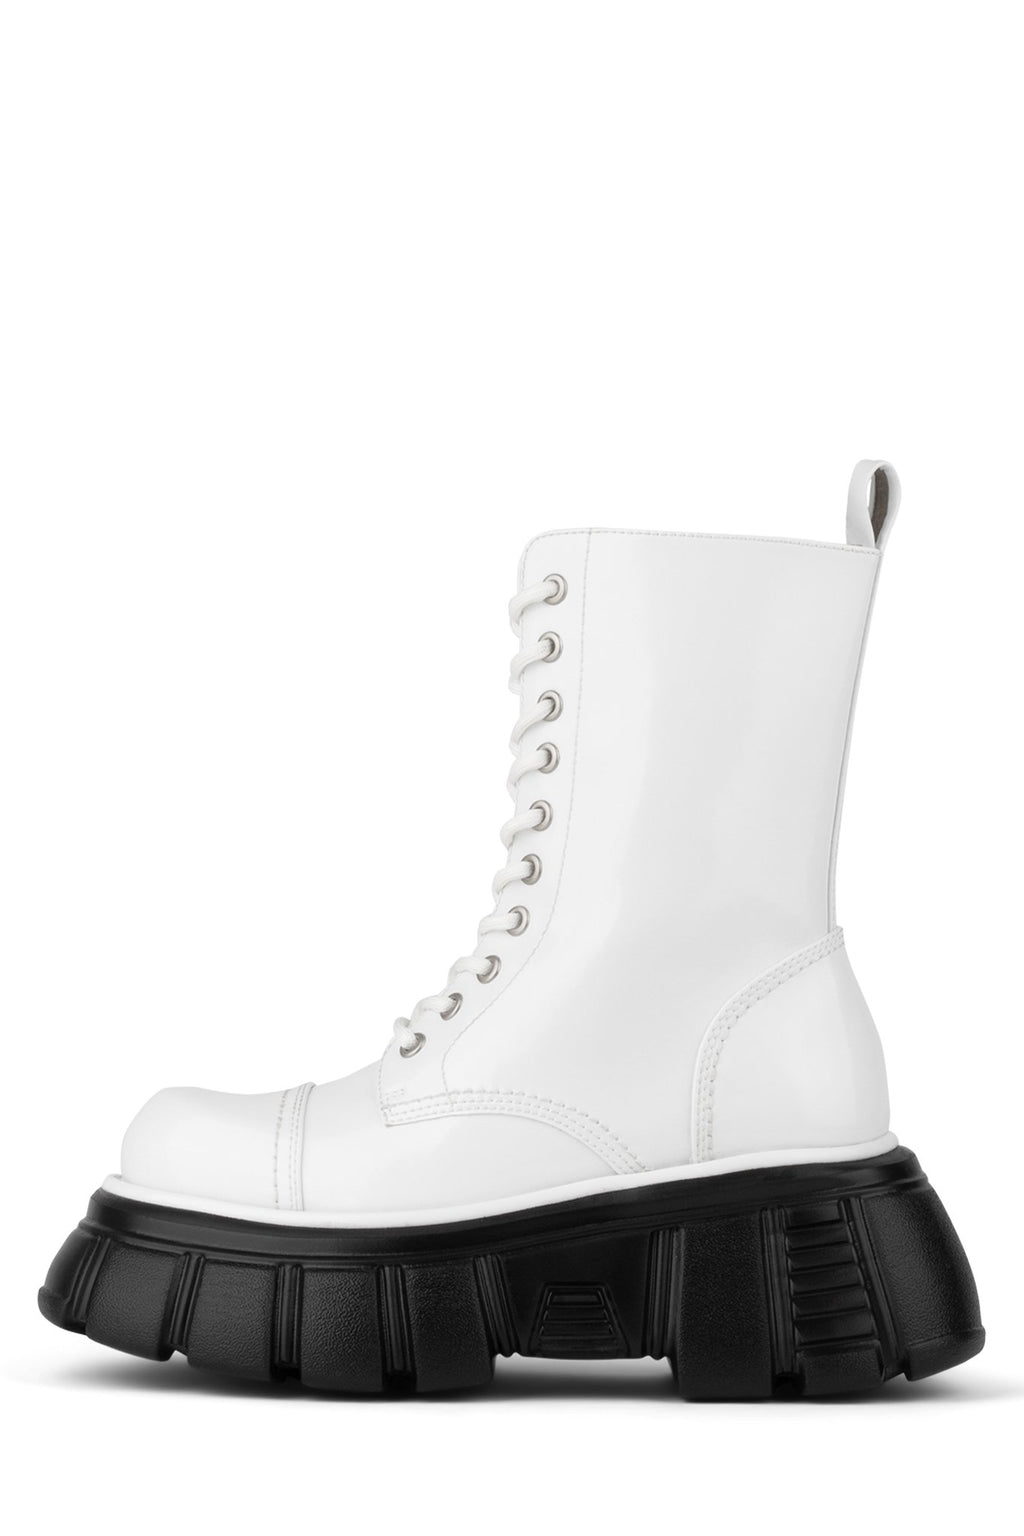 STOMP Platform Boot Jeffrey Campbell White Box 6